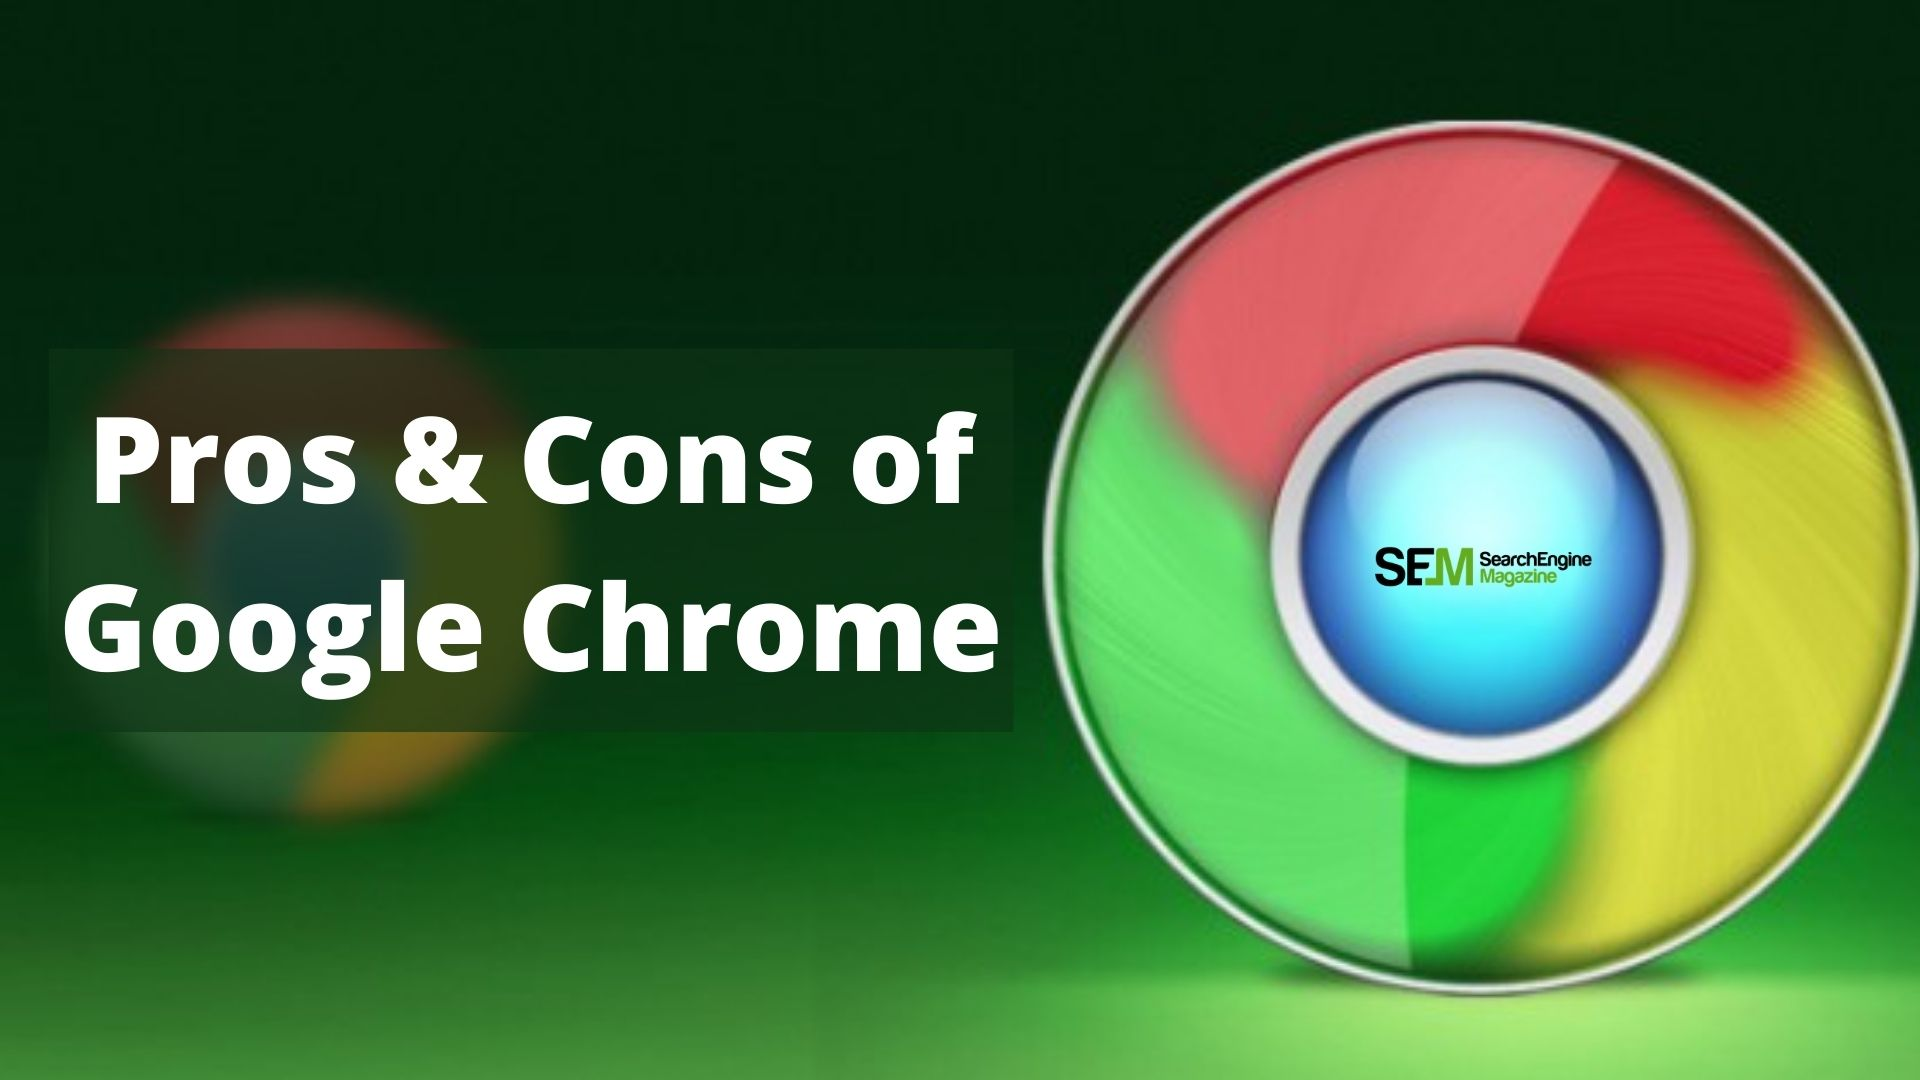 pros and cons of google chrome